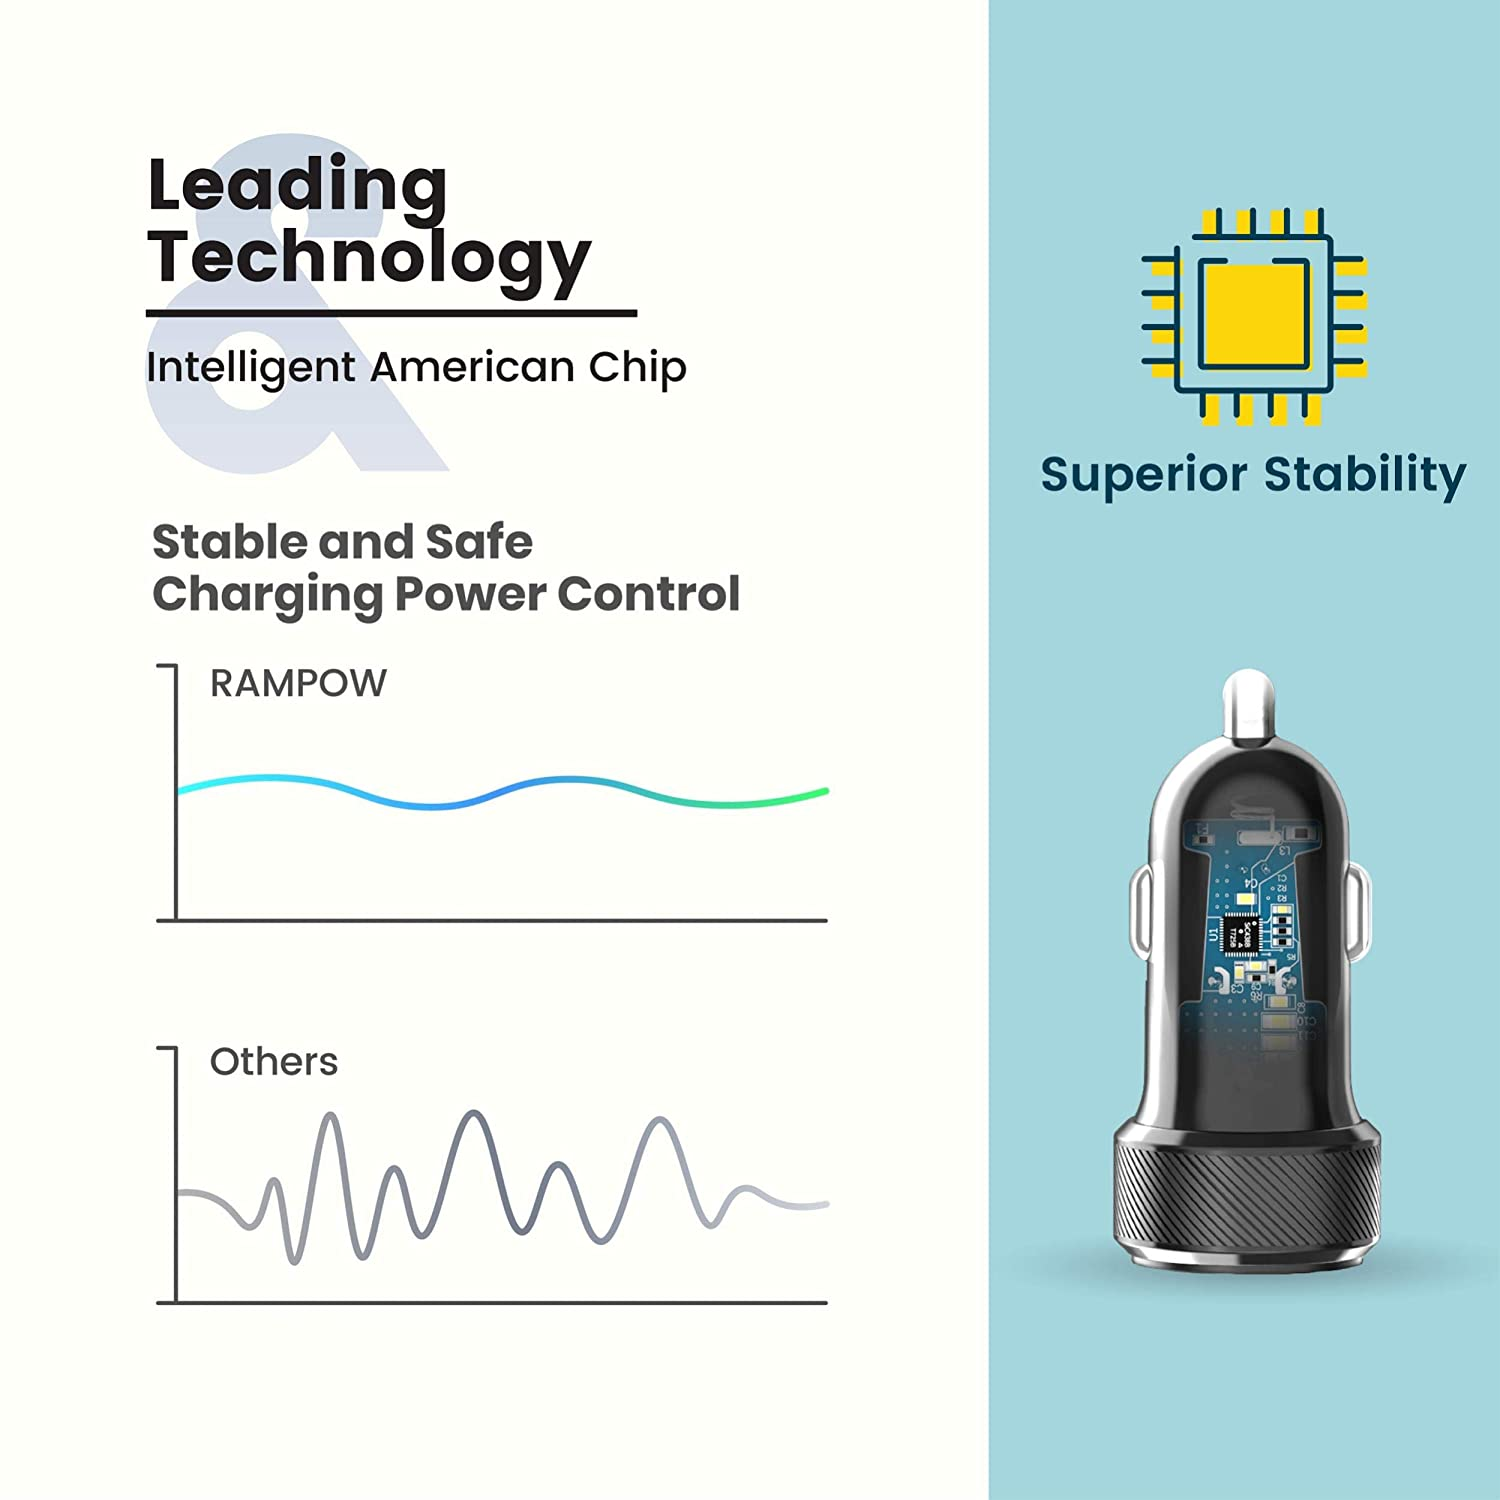 Dual Port USB Car Charger RAMPOW Car USB Charger Black 4348679277 Compatible Samsung Galaxy S10//S10e//S9//S8//S7//S6//Edge LG HTC Phone//Tablet and More Devices 2-Port 24W//4.8A